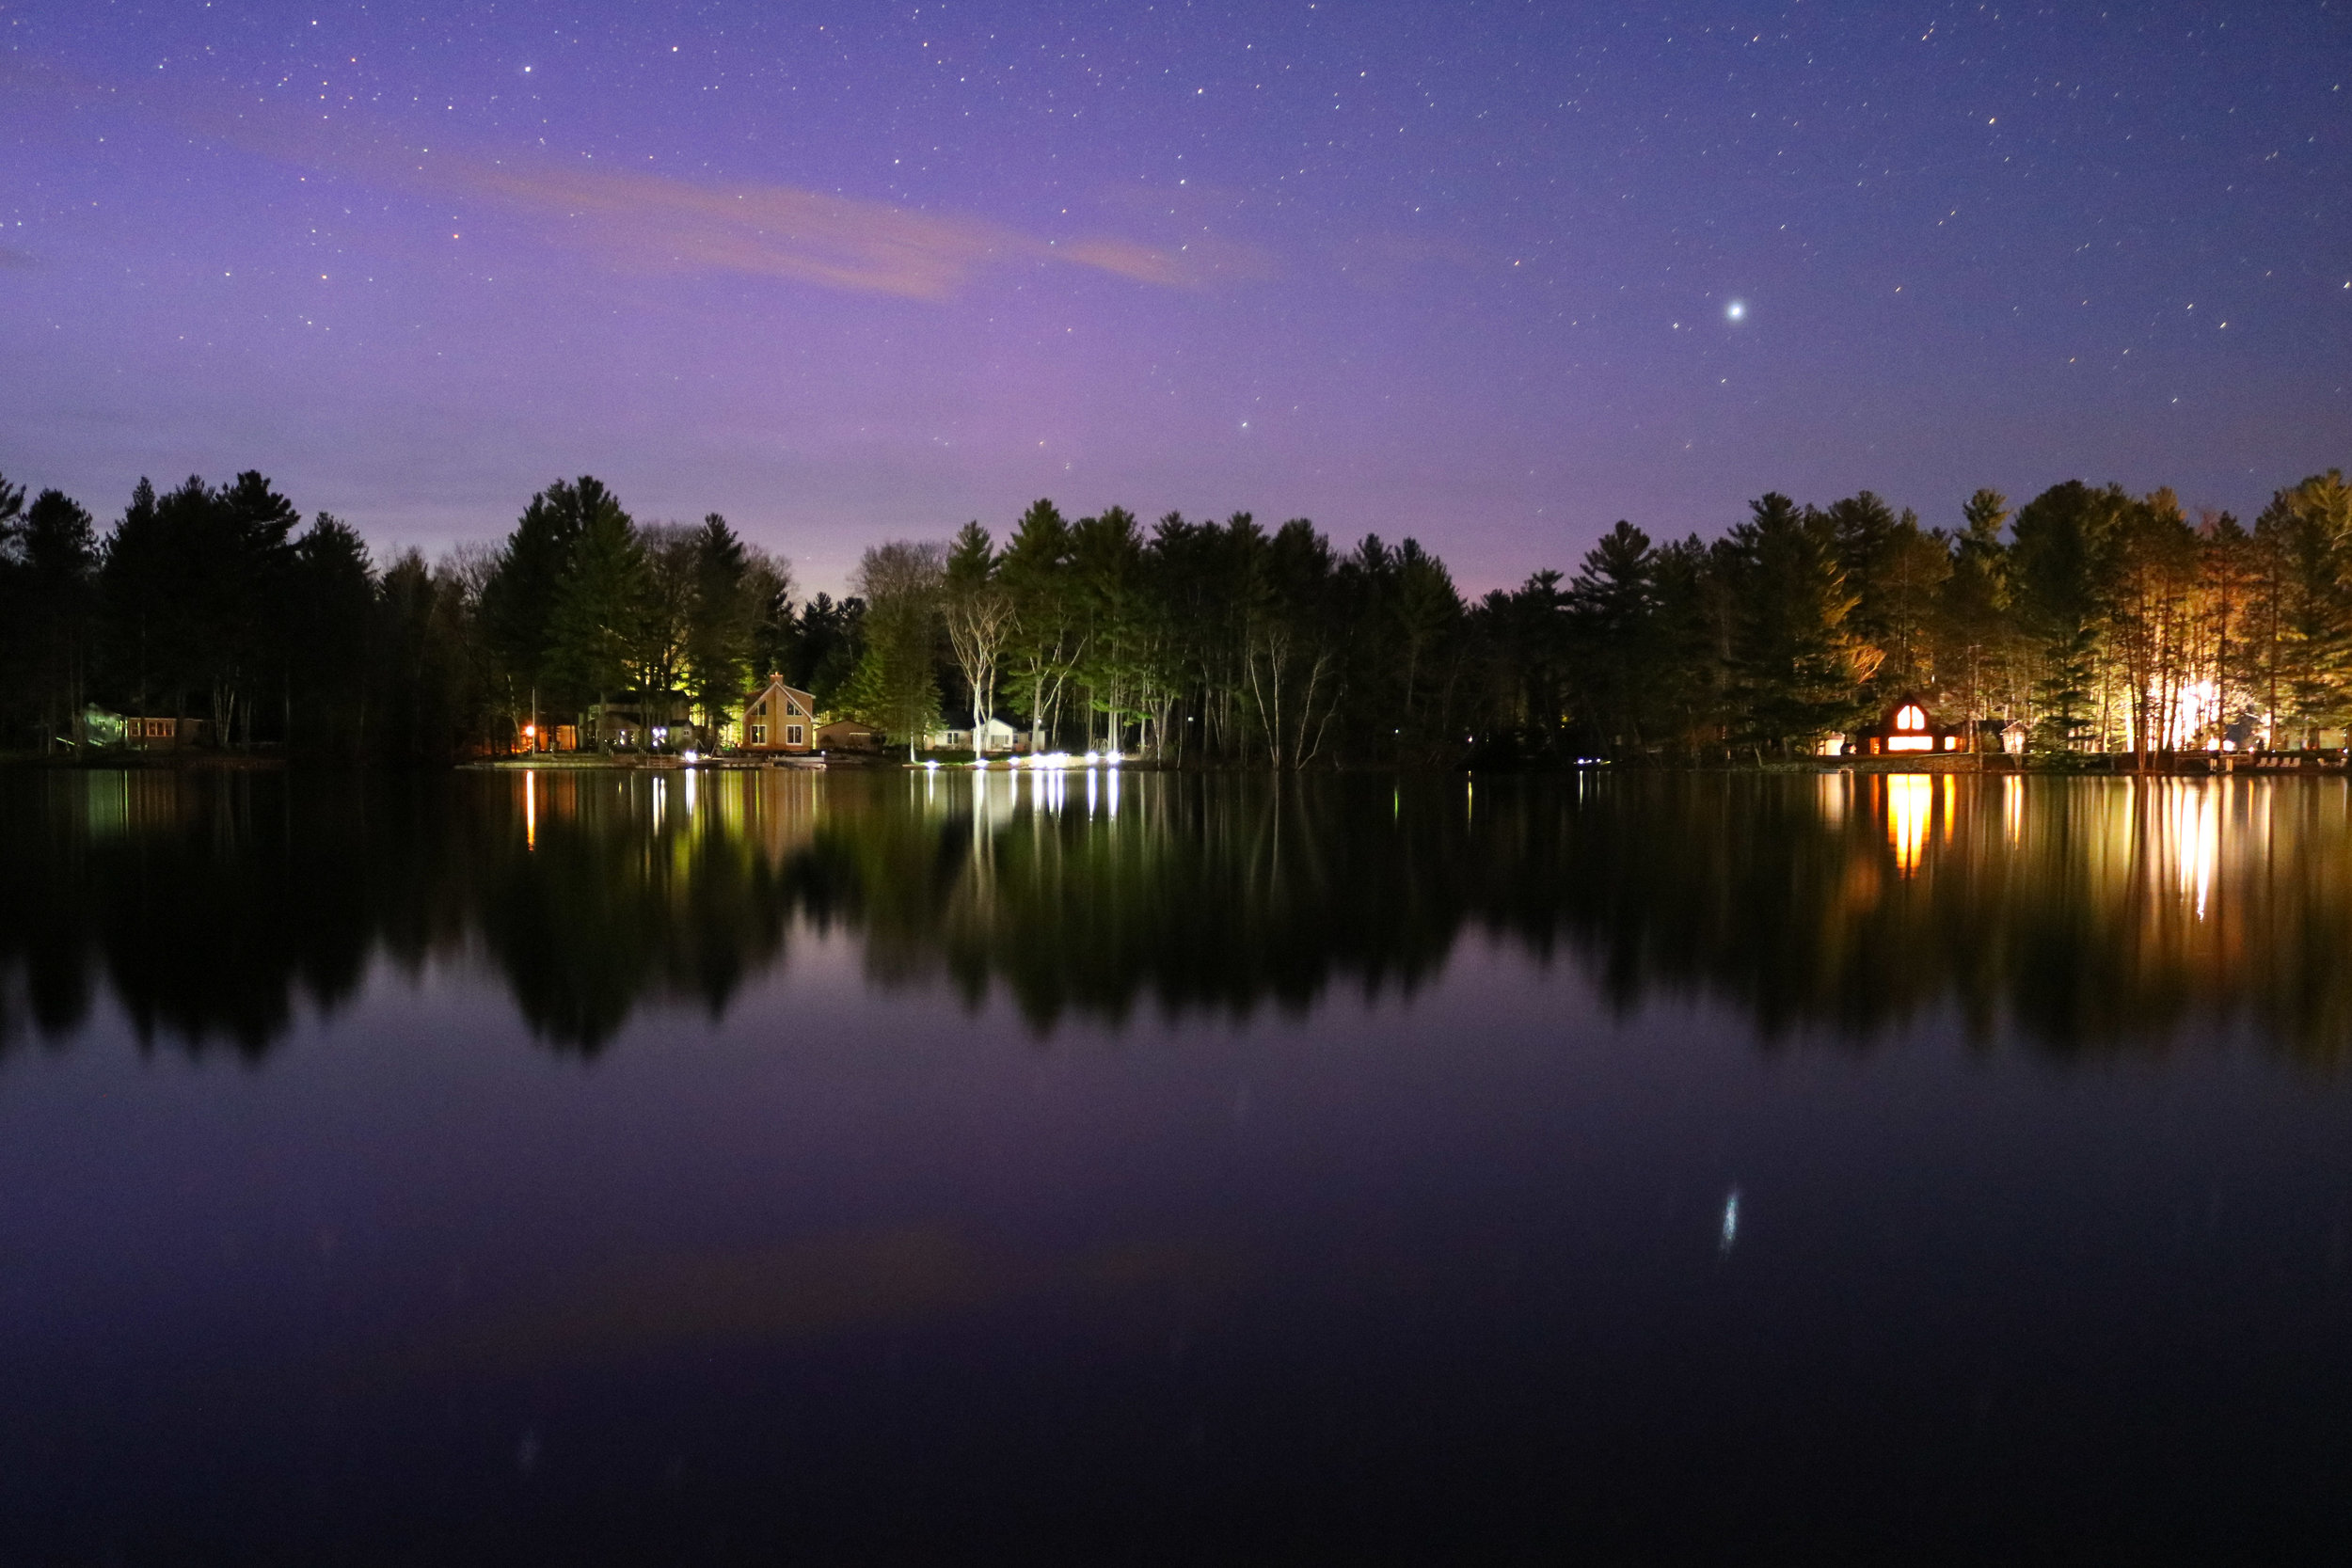 Nighttime-Lake-Reflection-Stars-Gladwin-Michigan-Photography